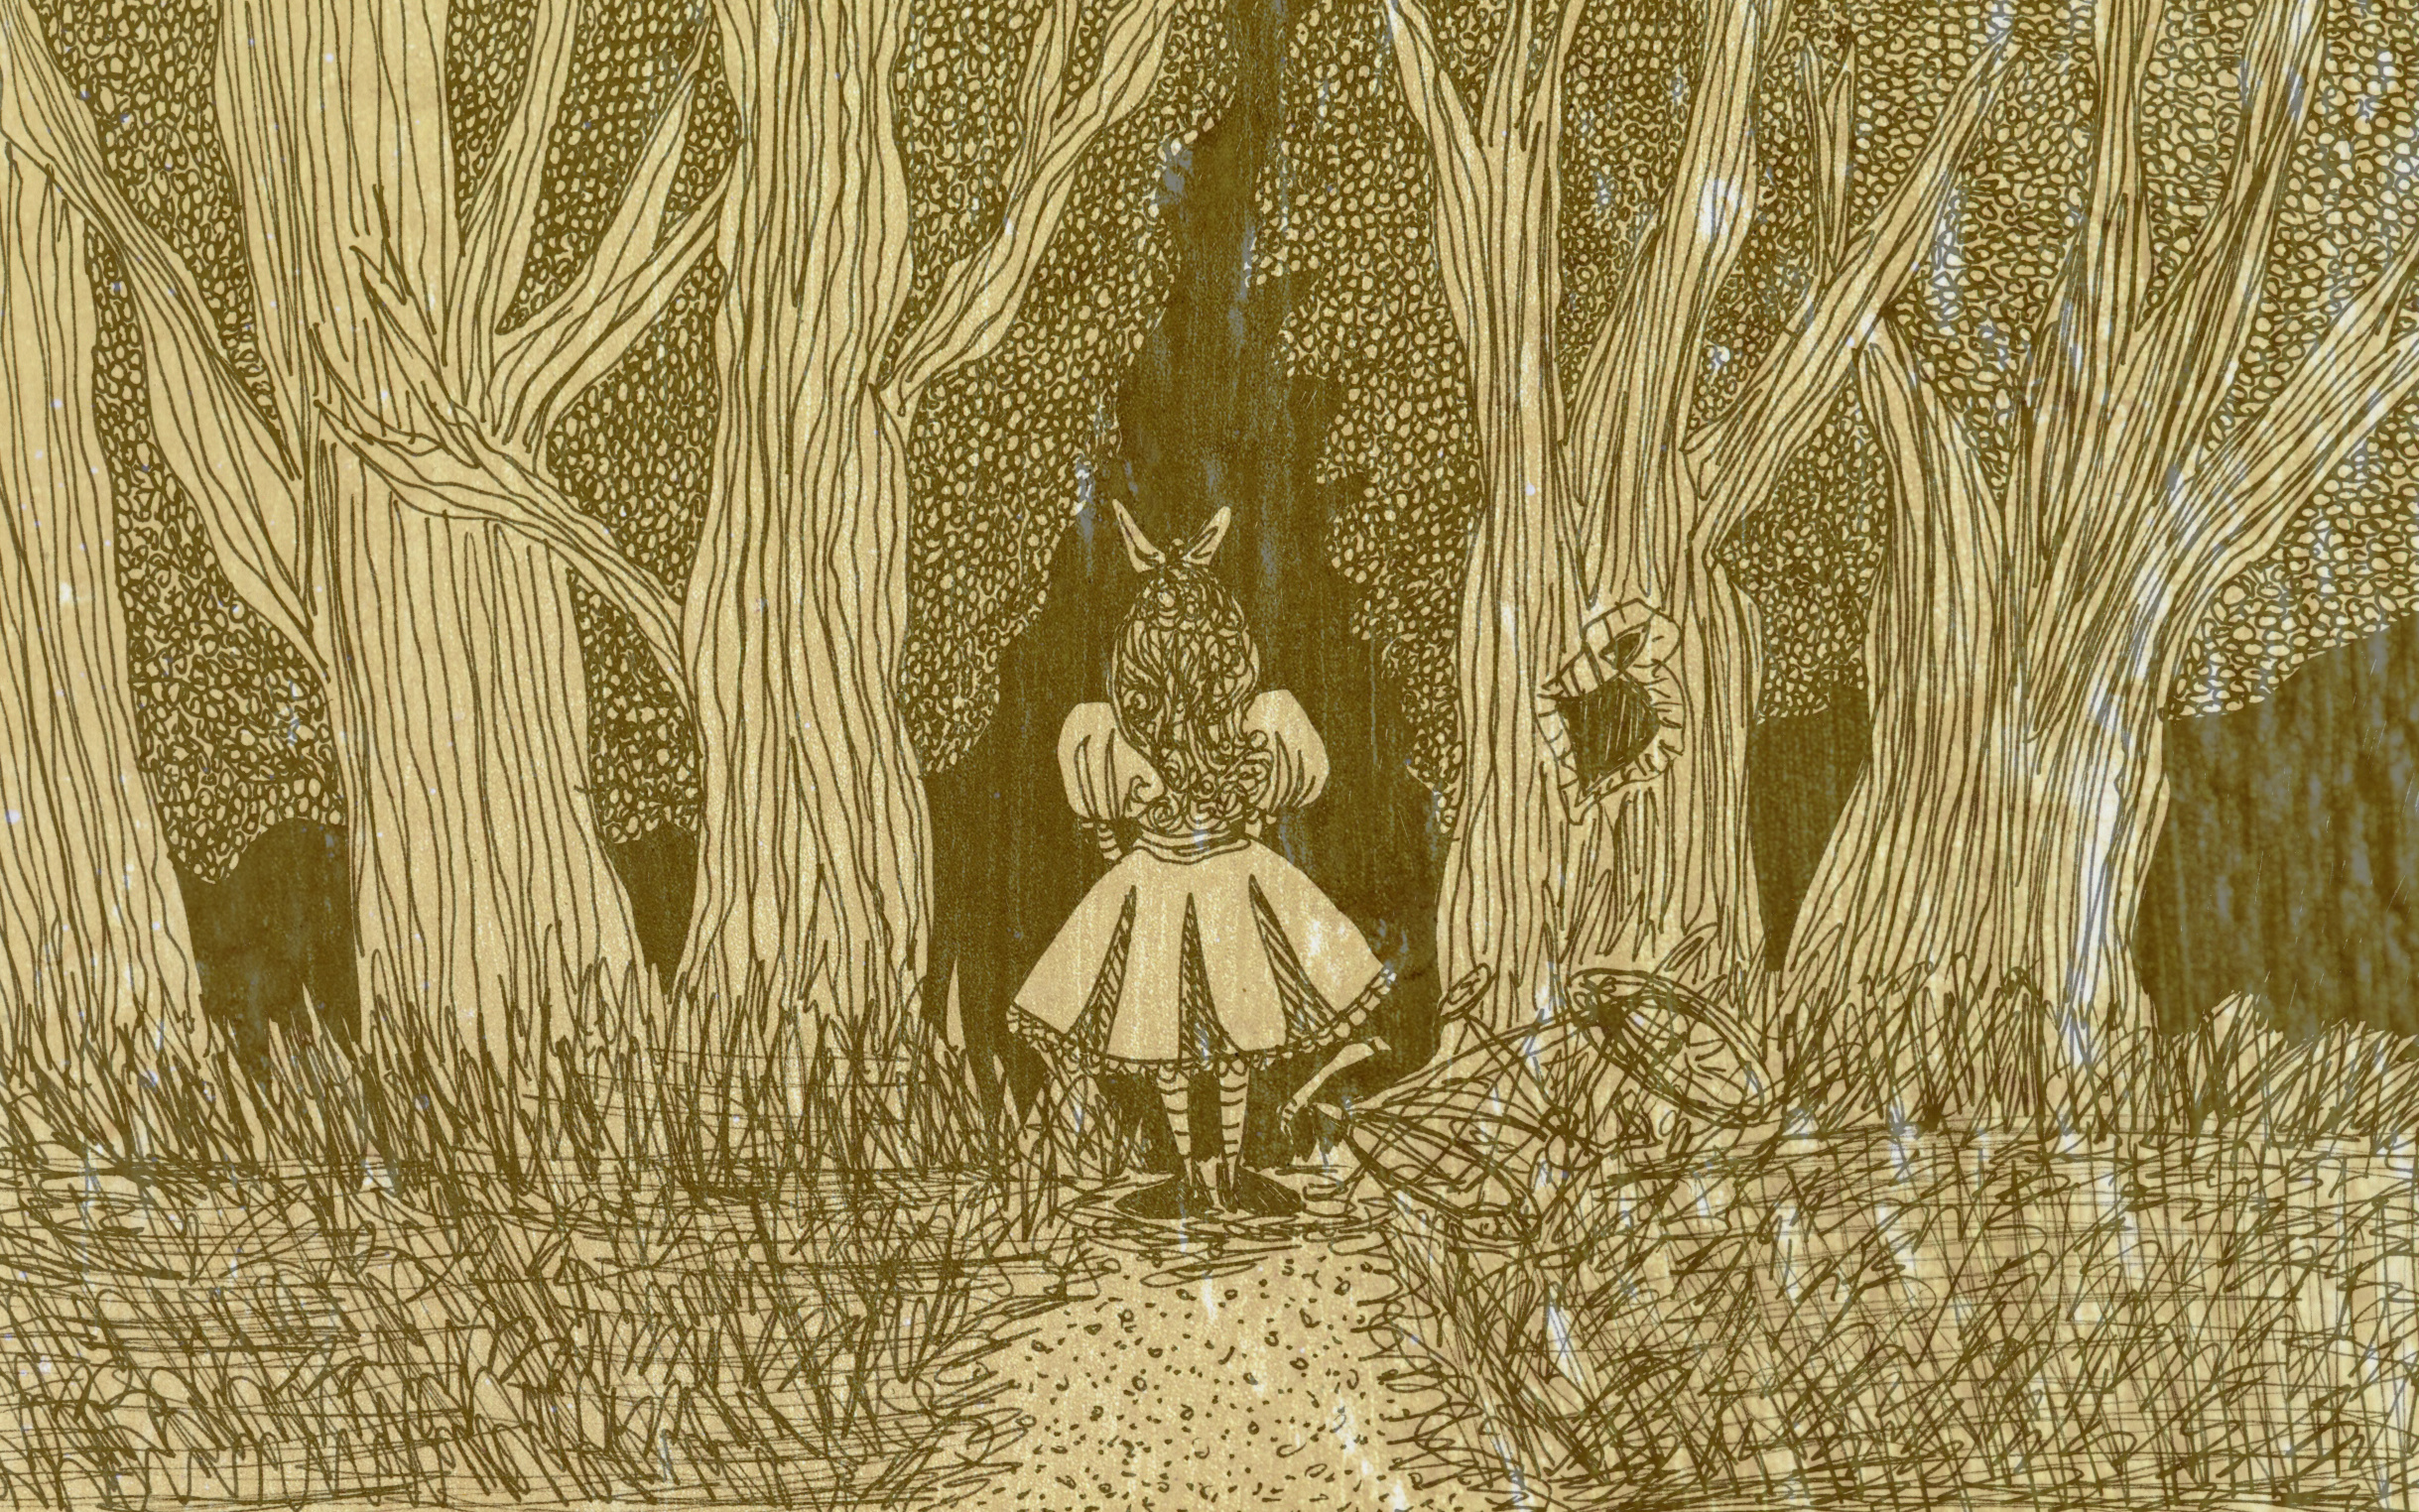 Image: Art of a girl entering a dark forest.